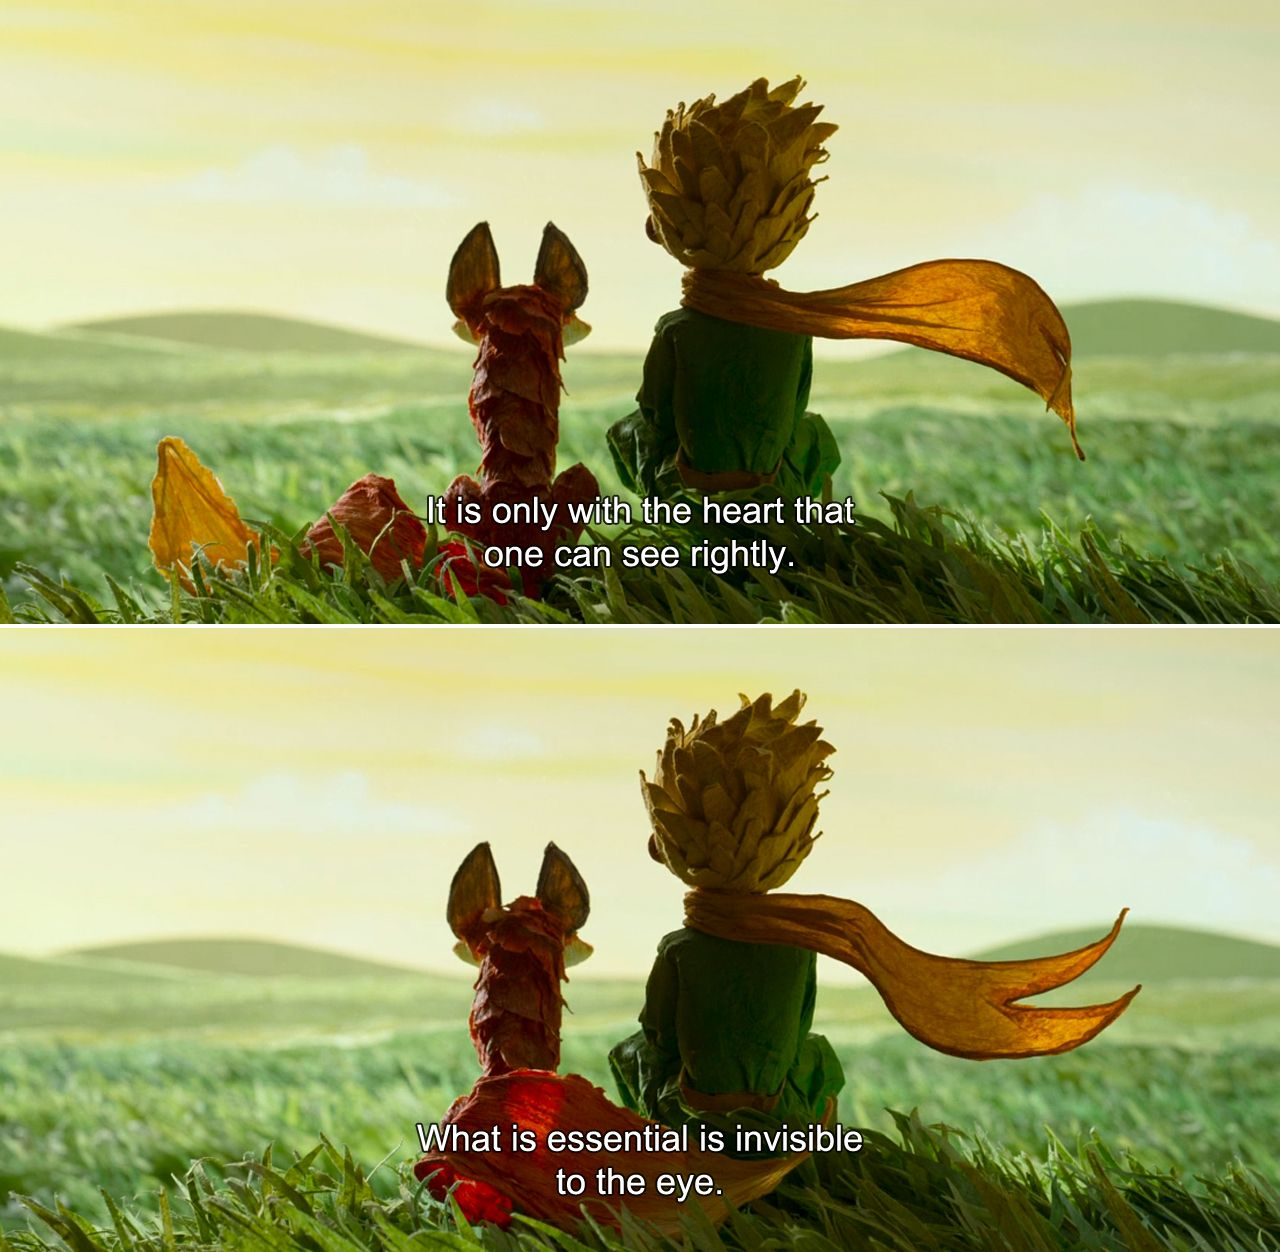 Inspiring Quotes From Animated Movies The Little Prince. Start your day off the right way with some nostalgia and heartwarming inspiration, with these best quotes from your favourite Disney Animated Movies.